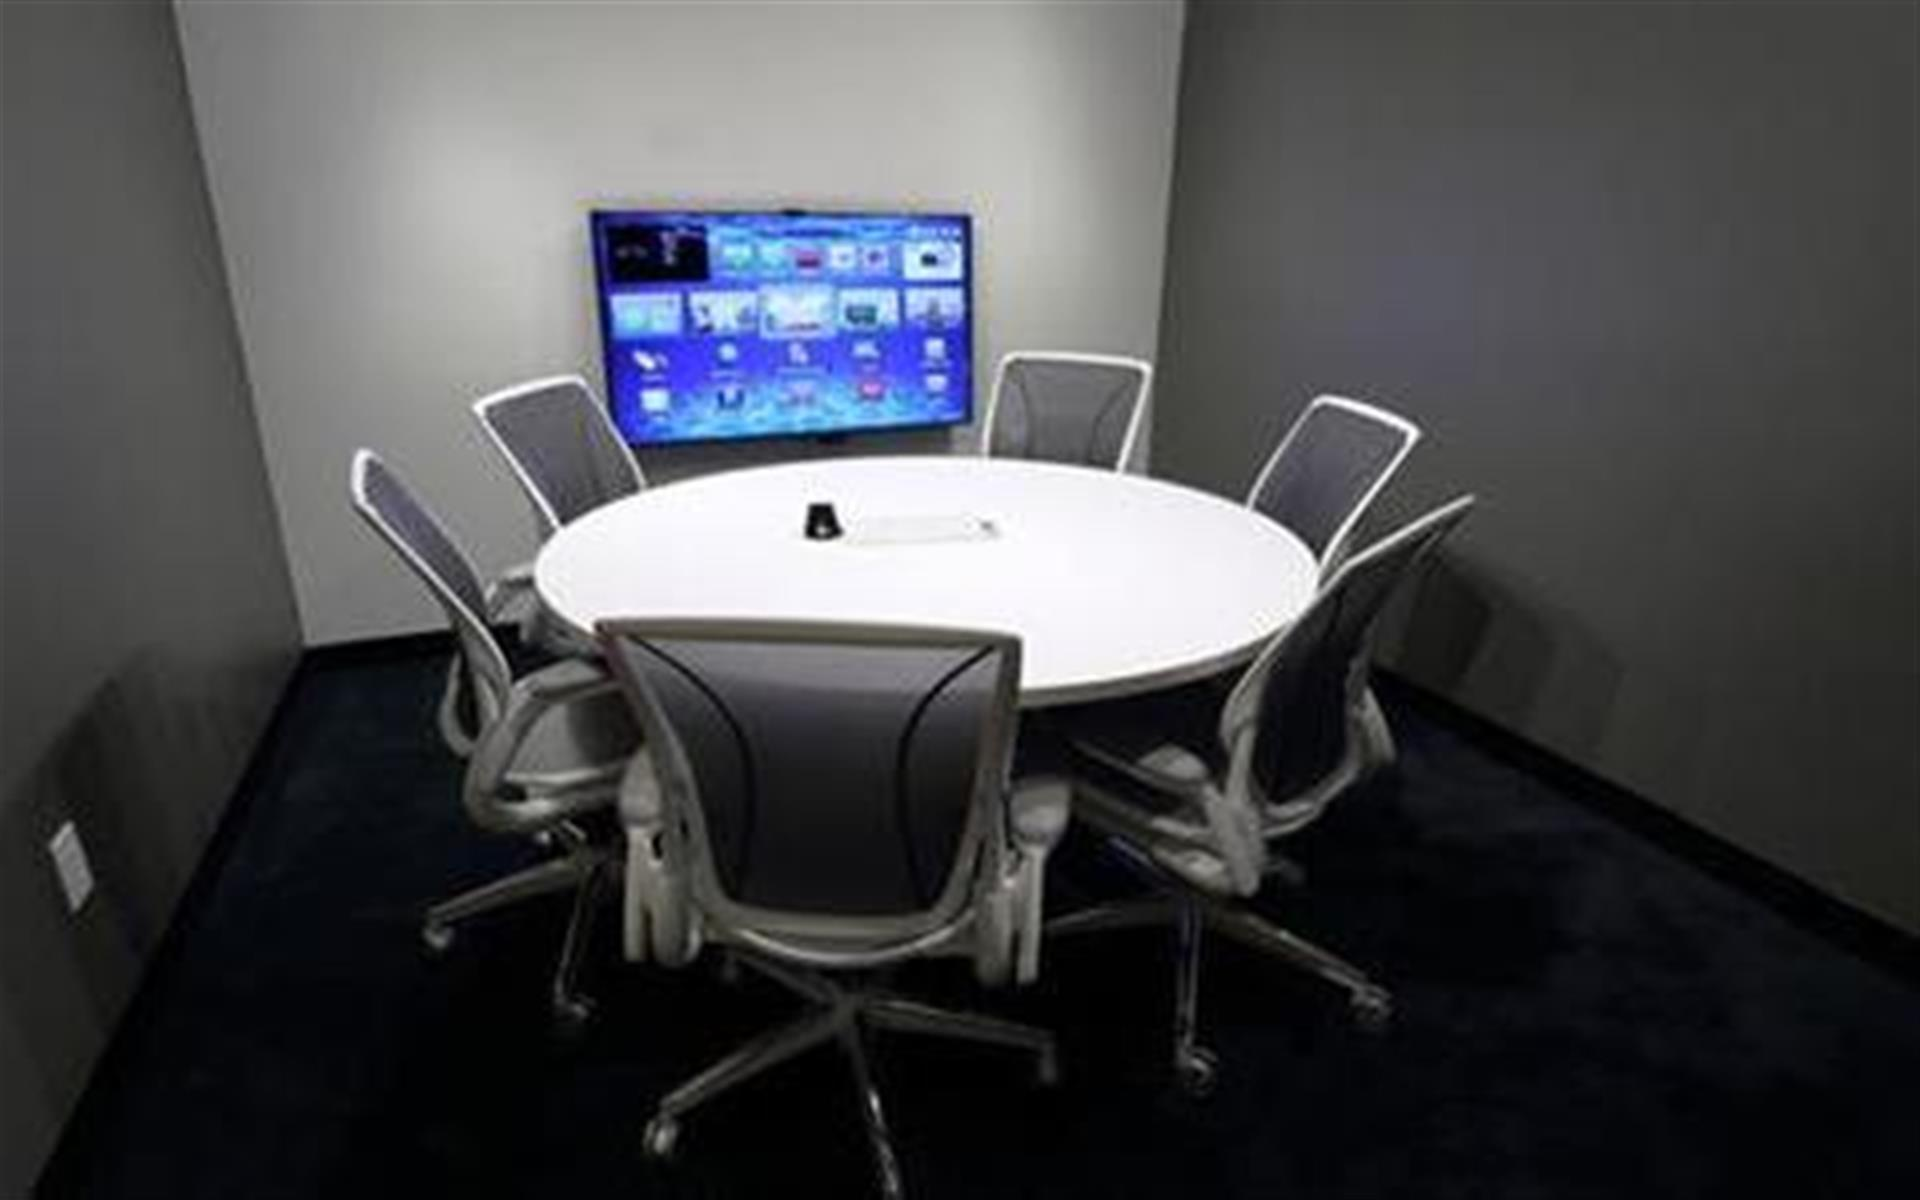 Ala Moana Center for  Business - Media Meeting Room (HDTV, apple TV etc)